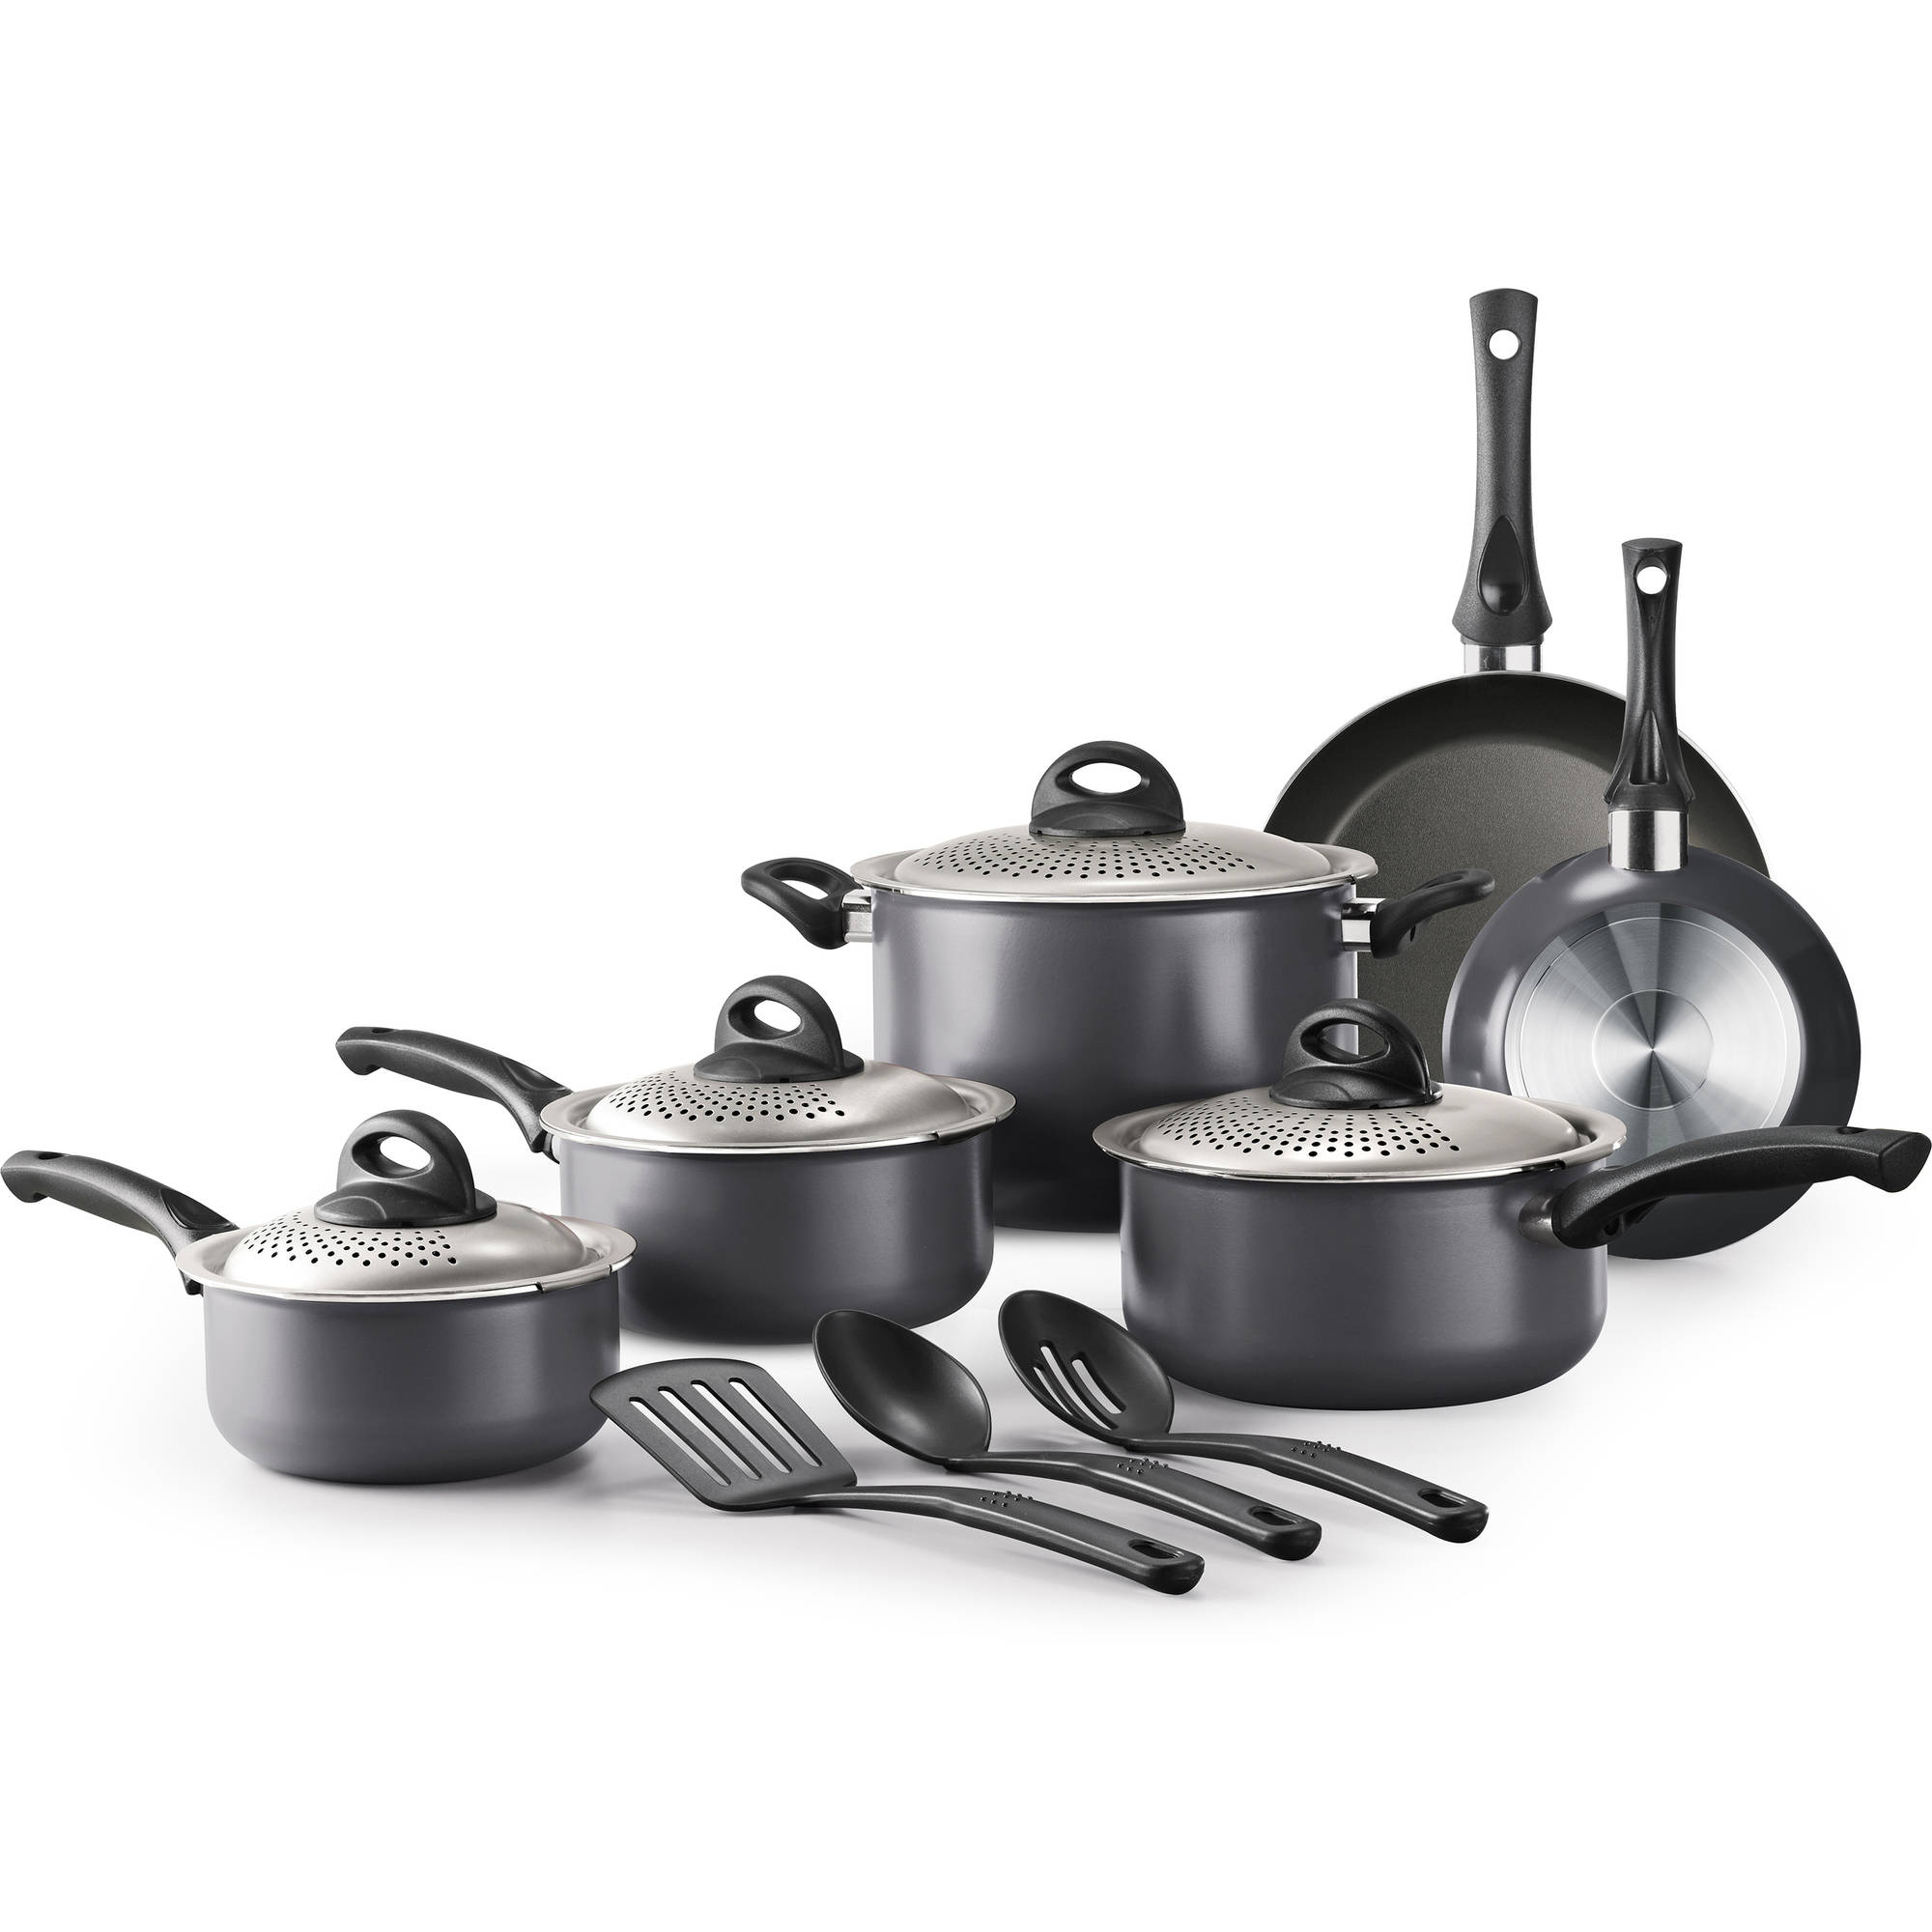 Tramontina 13-Piece Lock & Drain Non-Stick Cookware Set